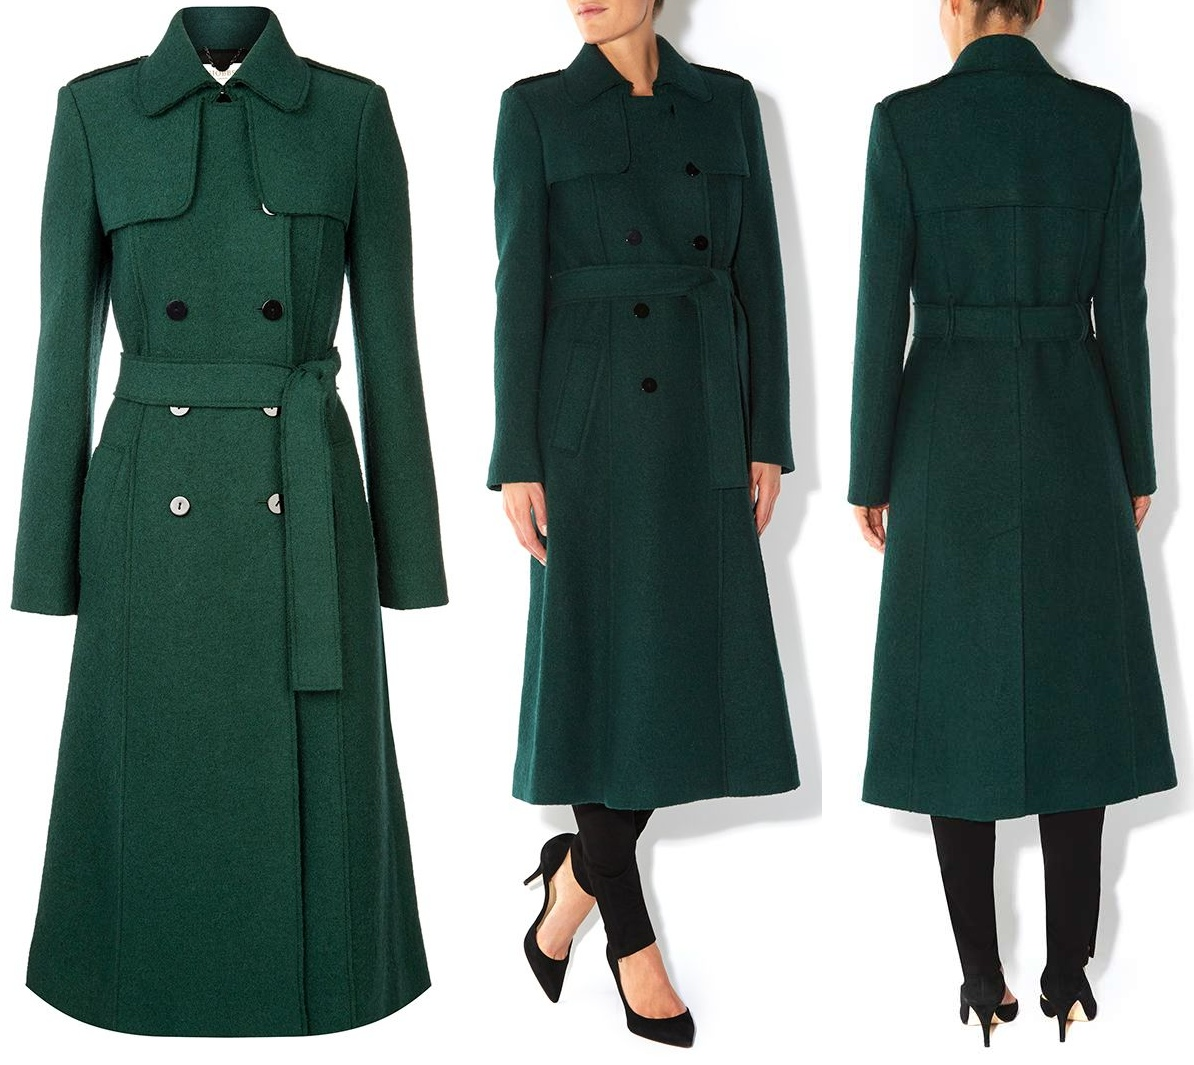 Kate Green Hobbs Persephone Coat St. Patrick's Day 2014